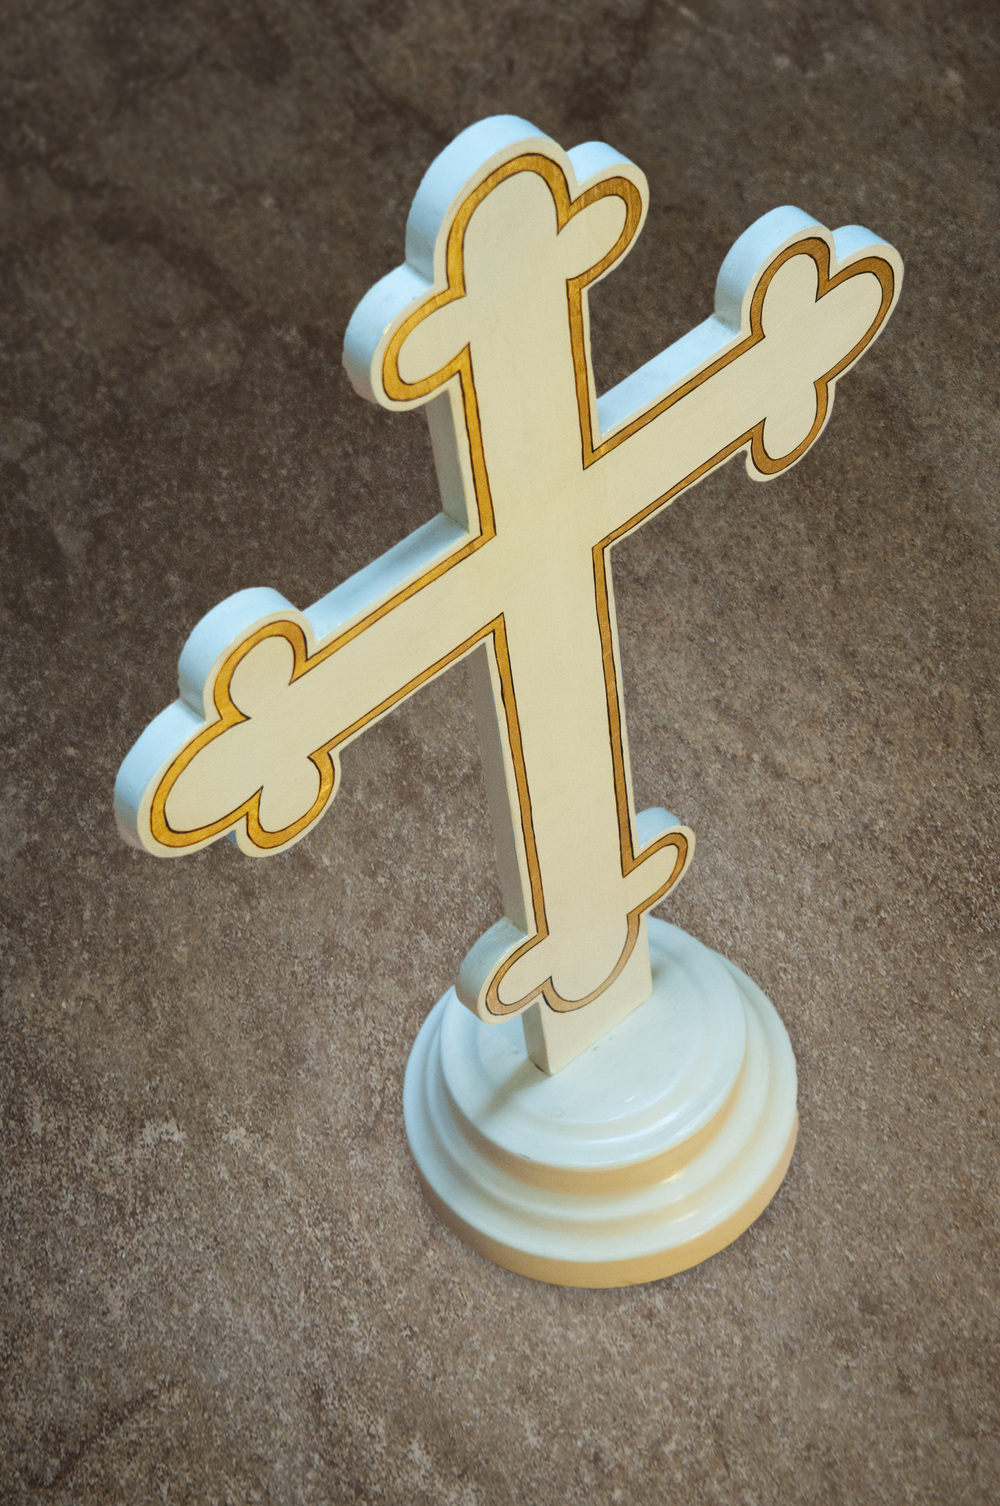 Wooden cross used in the Eastern Orthodox faith.